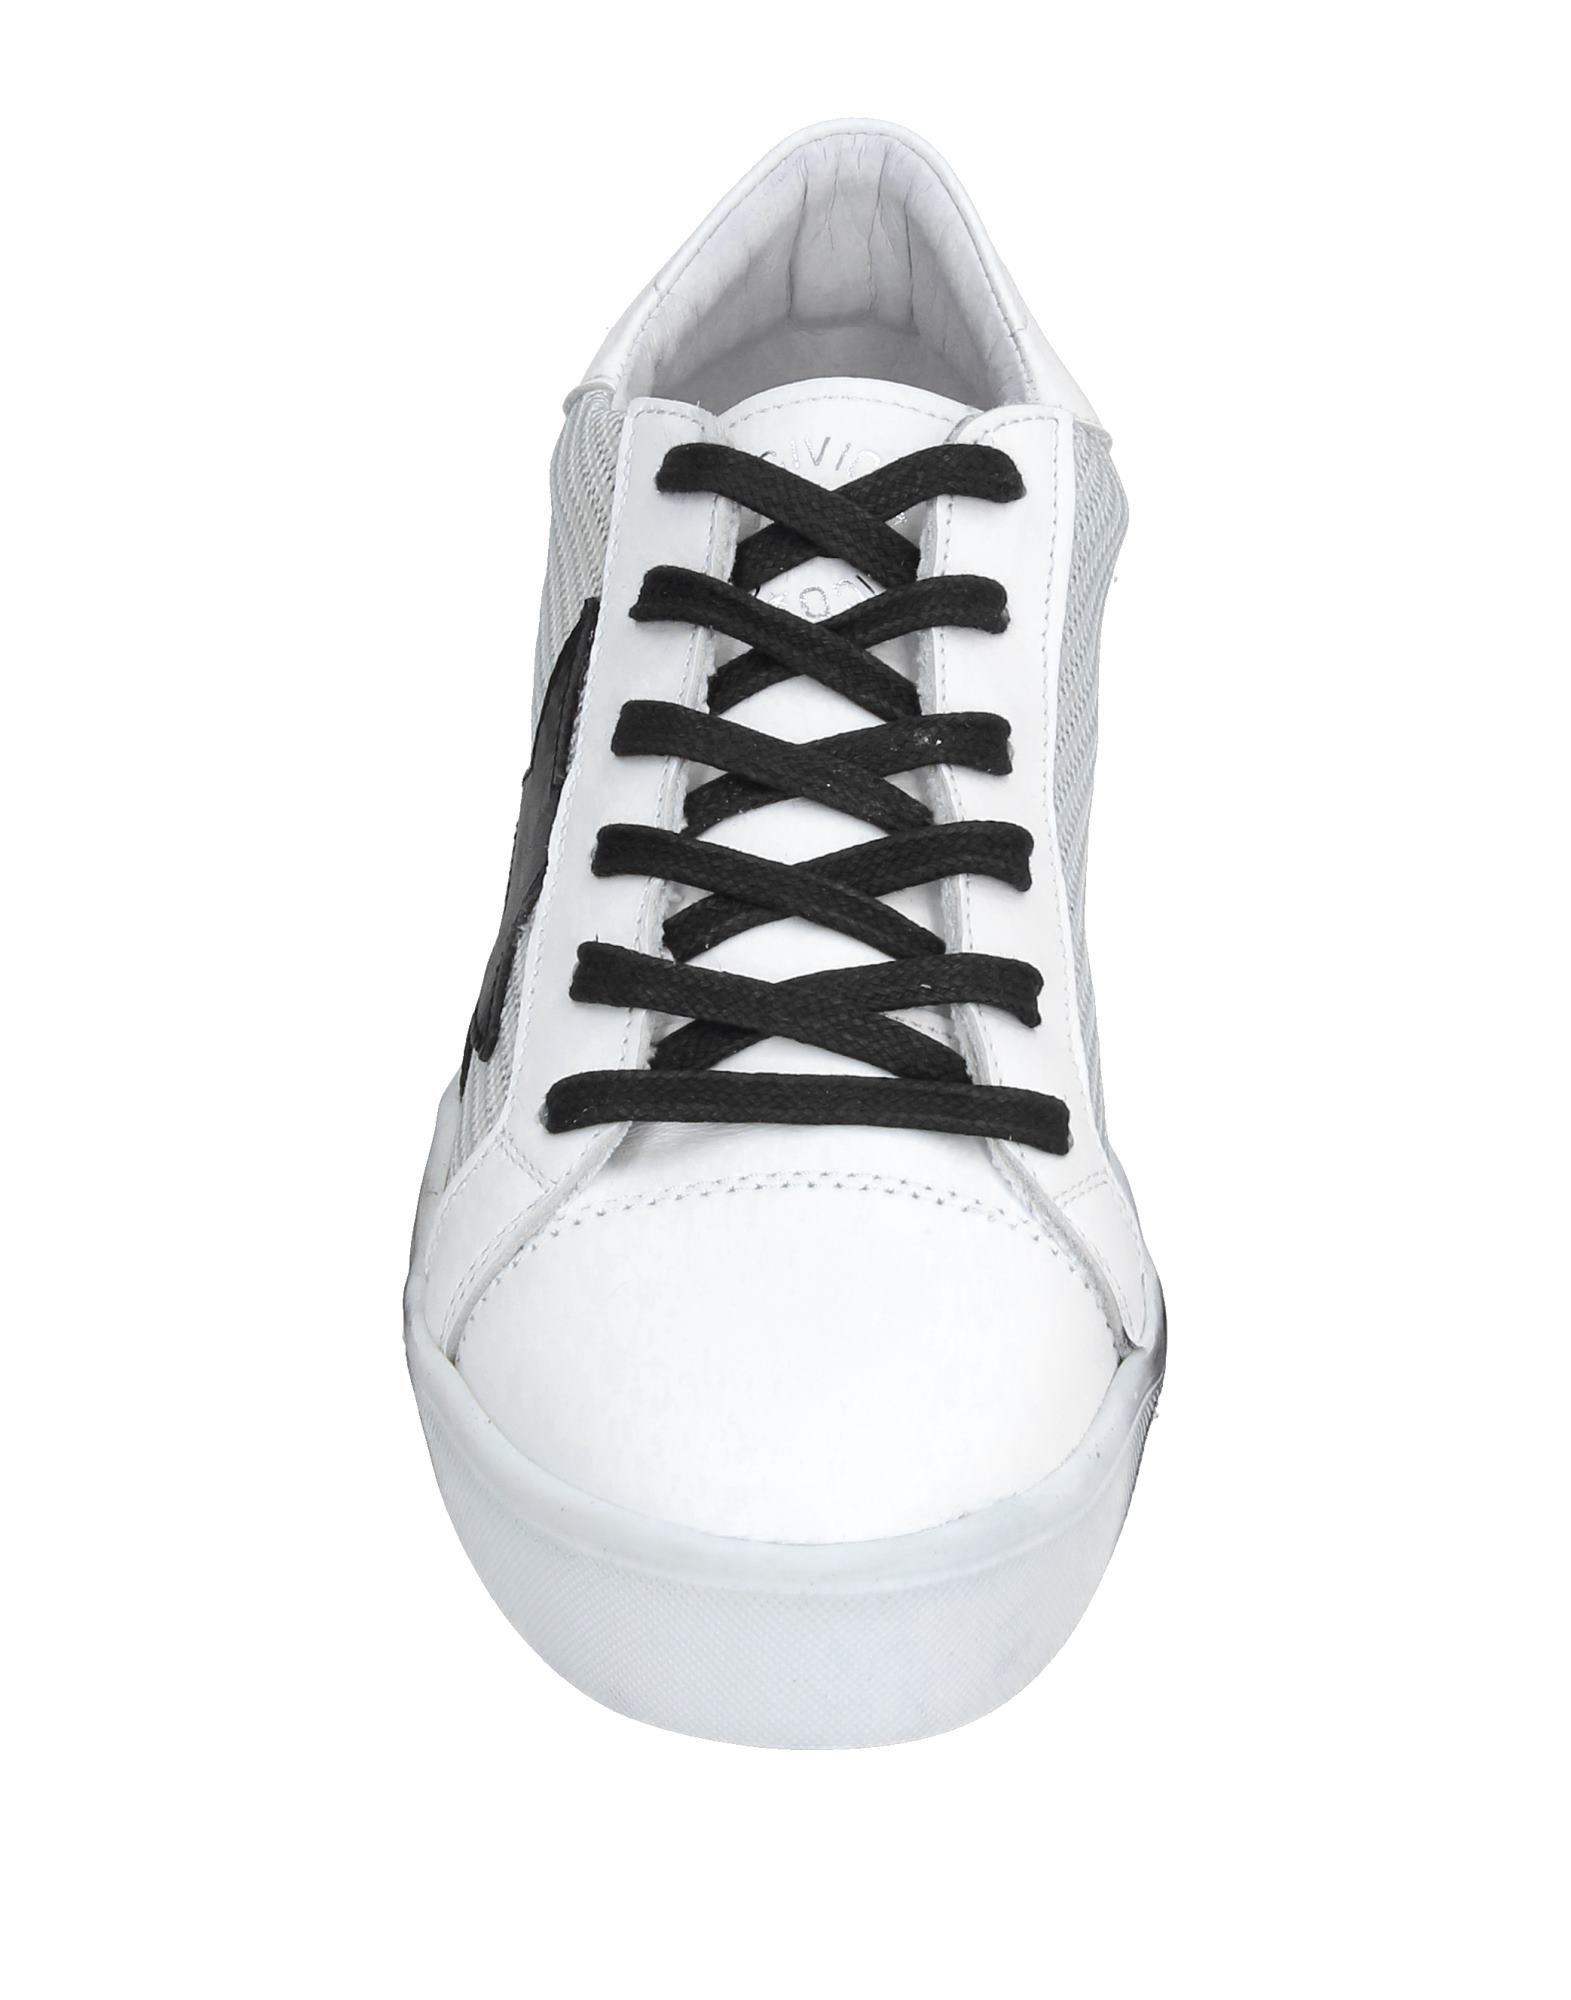 Sneakers Civico 38 Femme - Sneakers Civico 38 sur